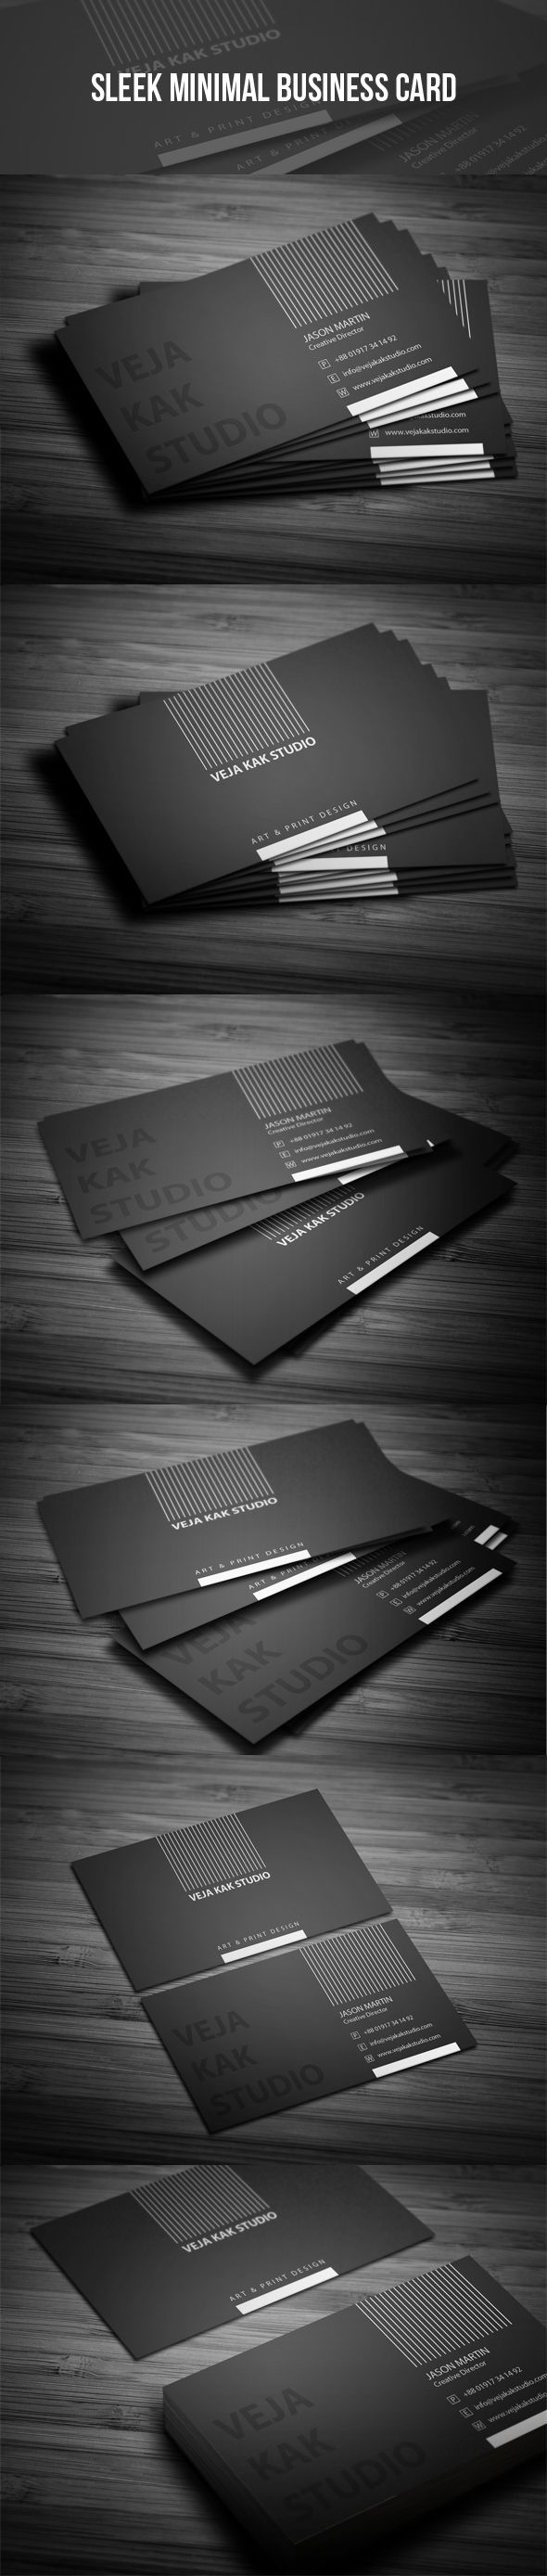 Sleek Minimal Business Card. Click here for more: https://graphicriver.net/user/vejakakstudio/portfolio